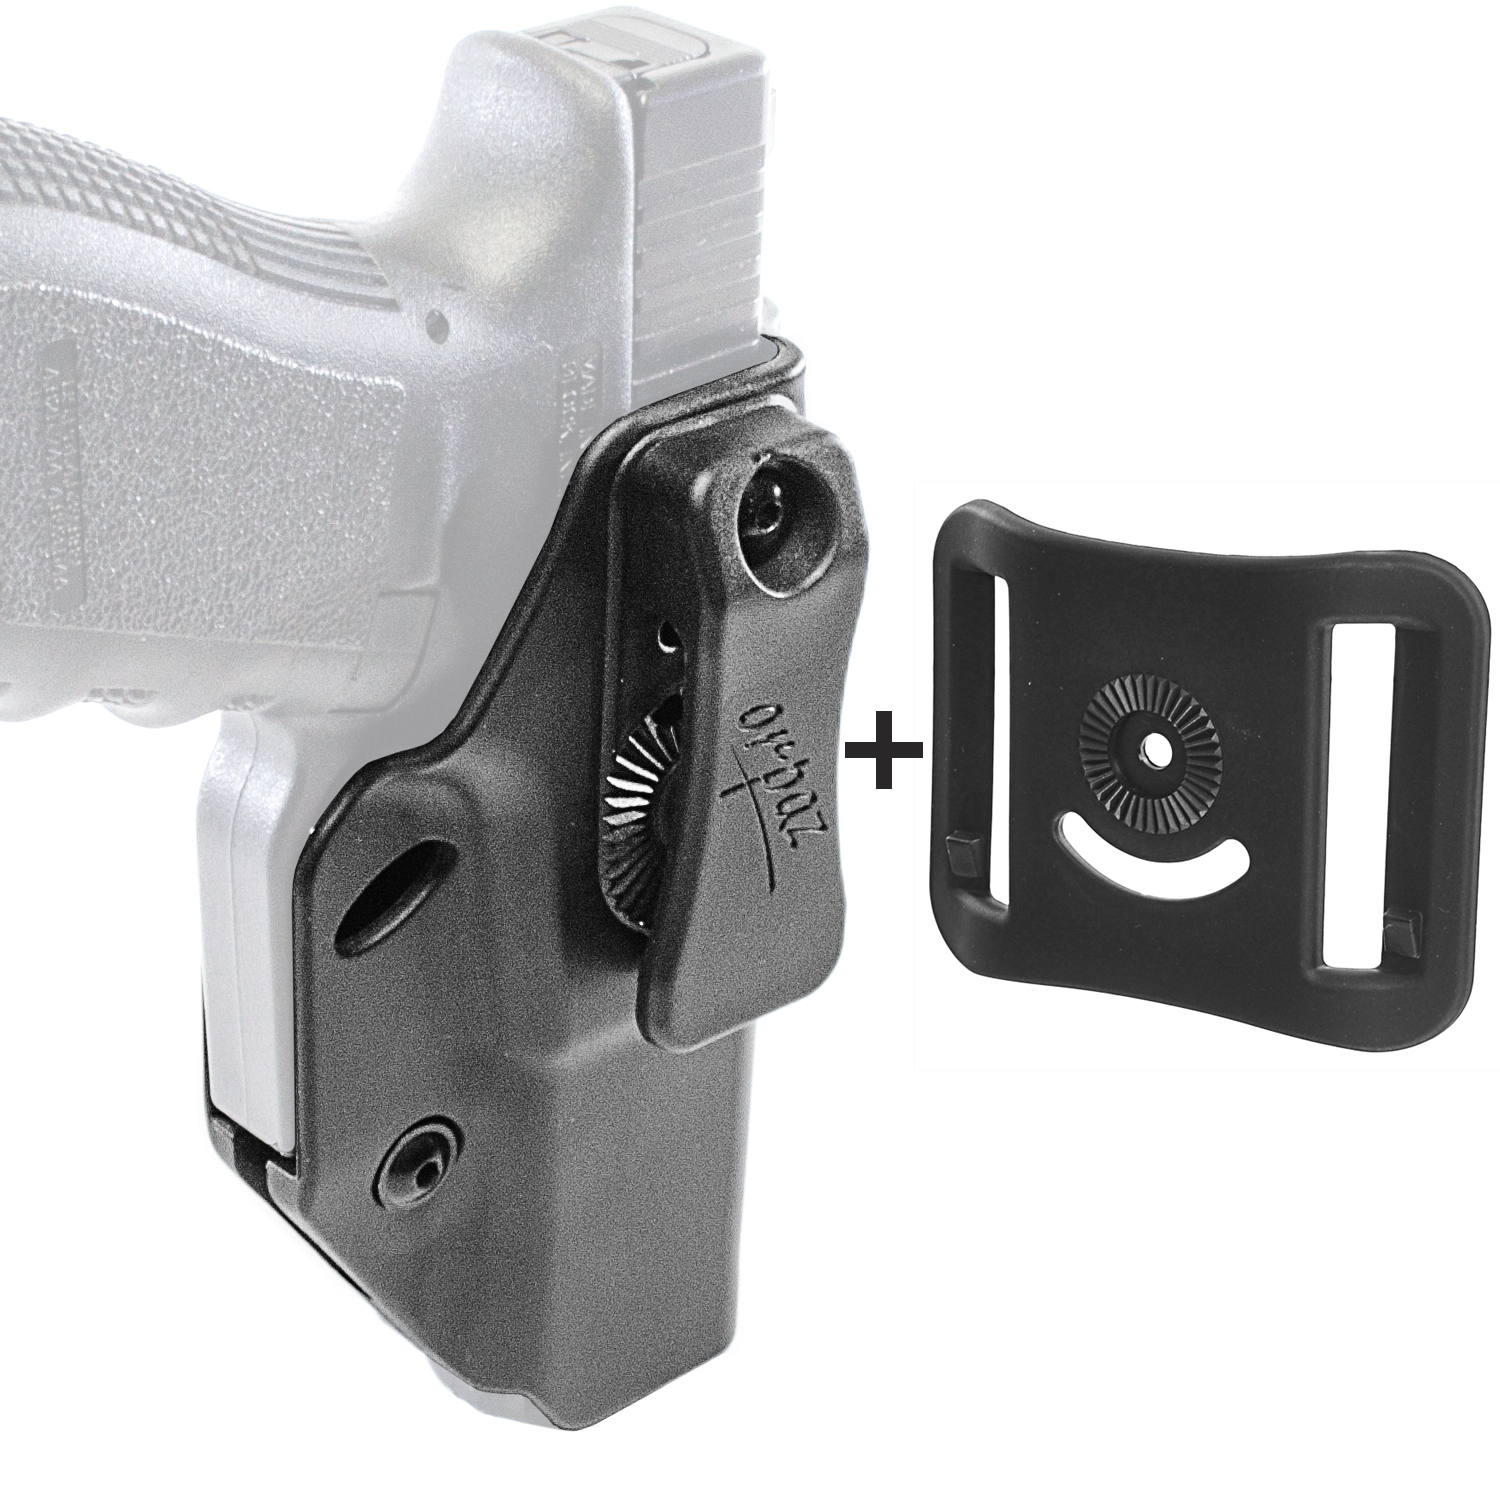 Orpaz Glock Left Hand Concealed Carry Holster IWB Holster & OWB Belt Attachment by Orpaz